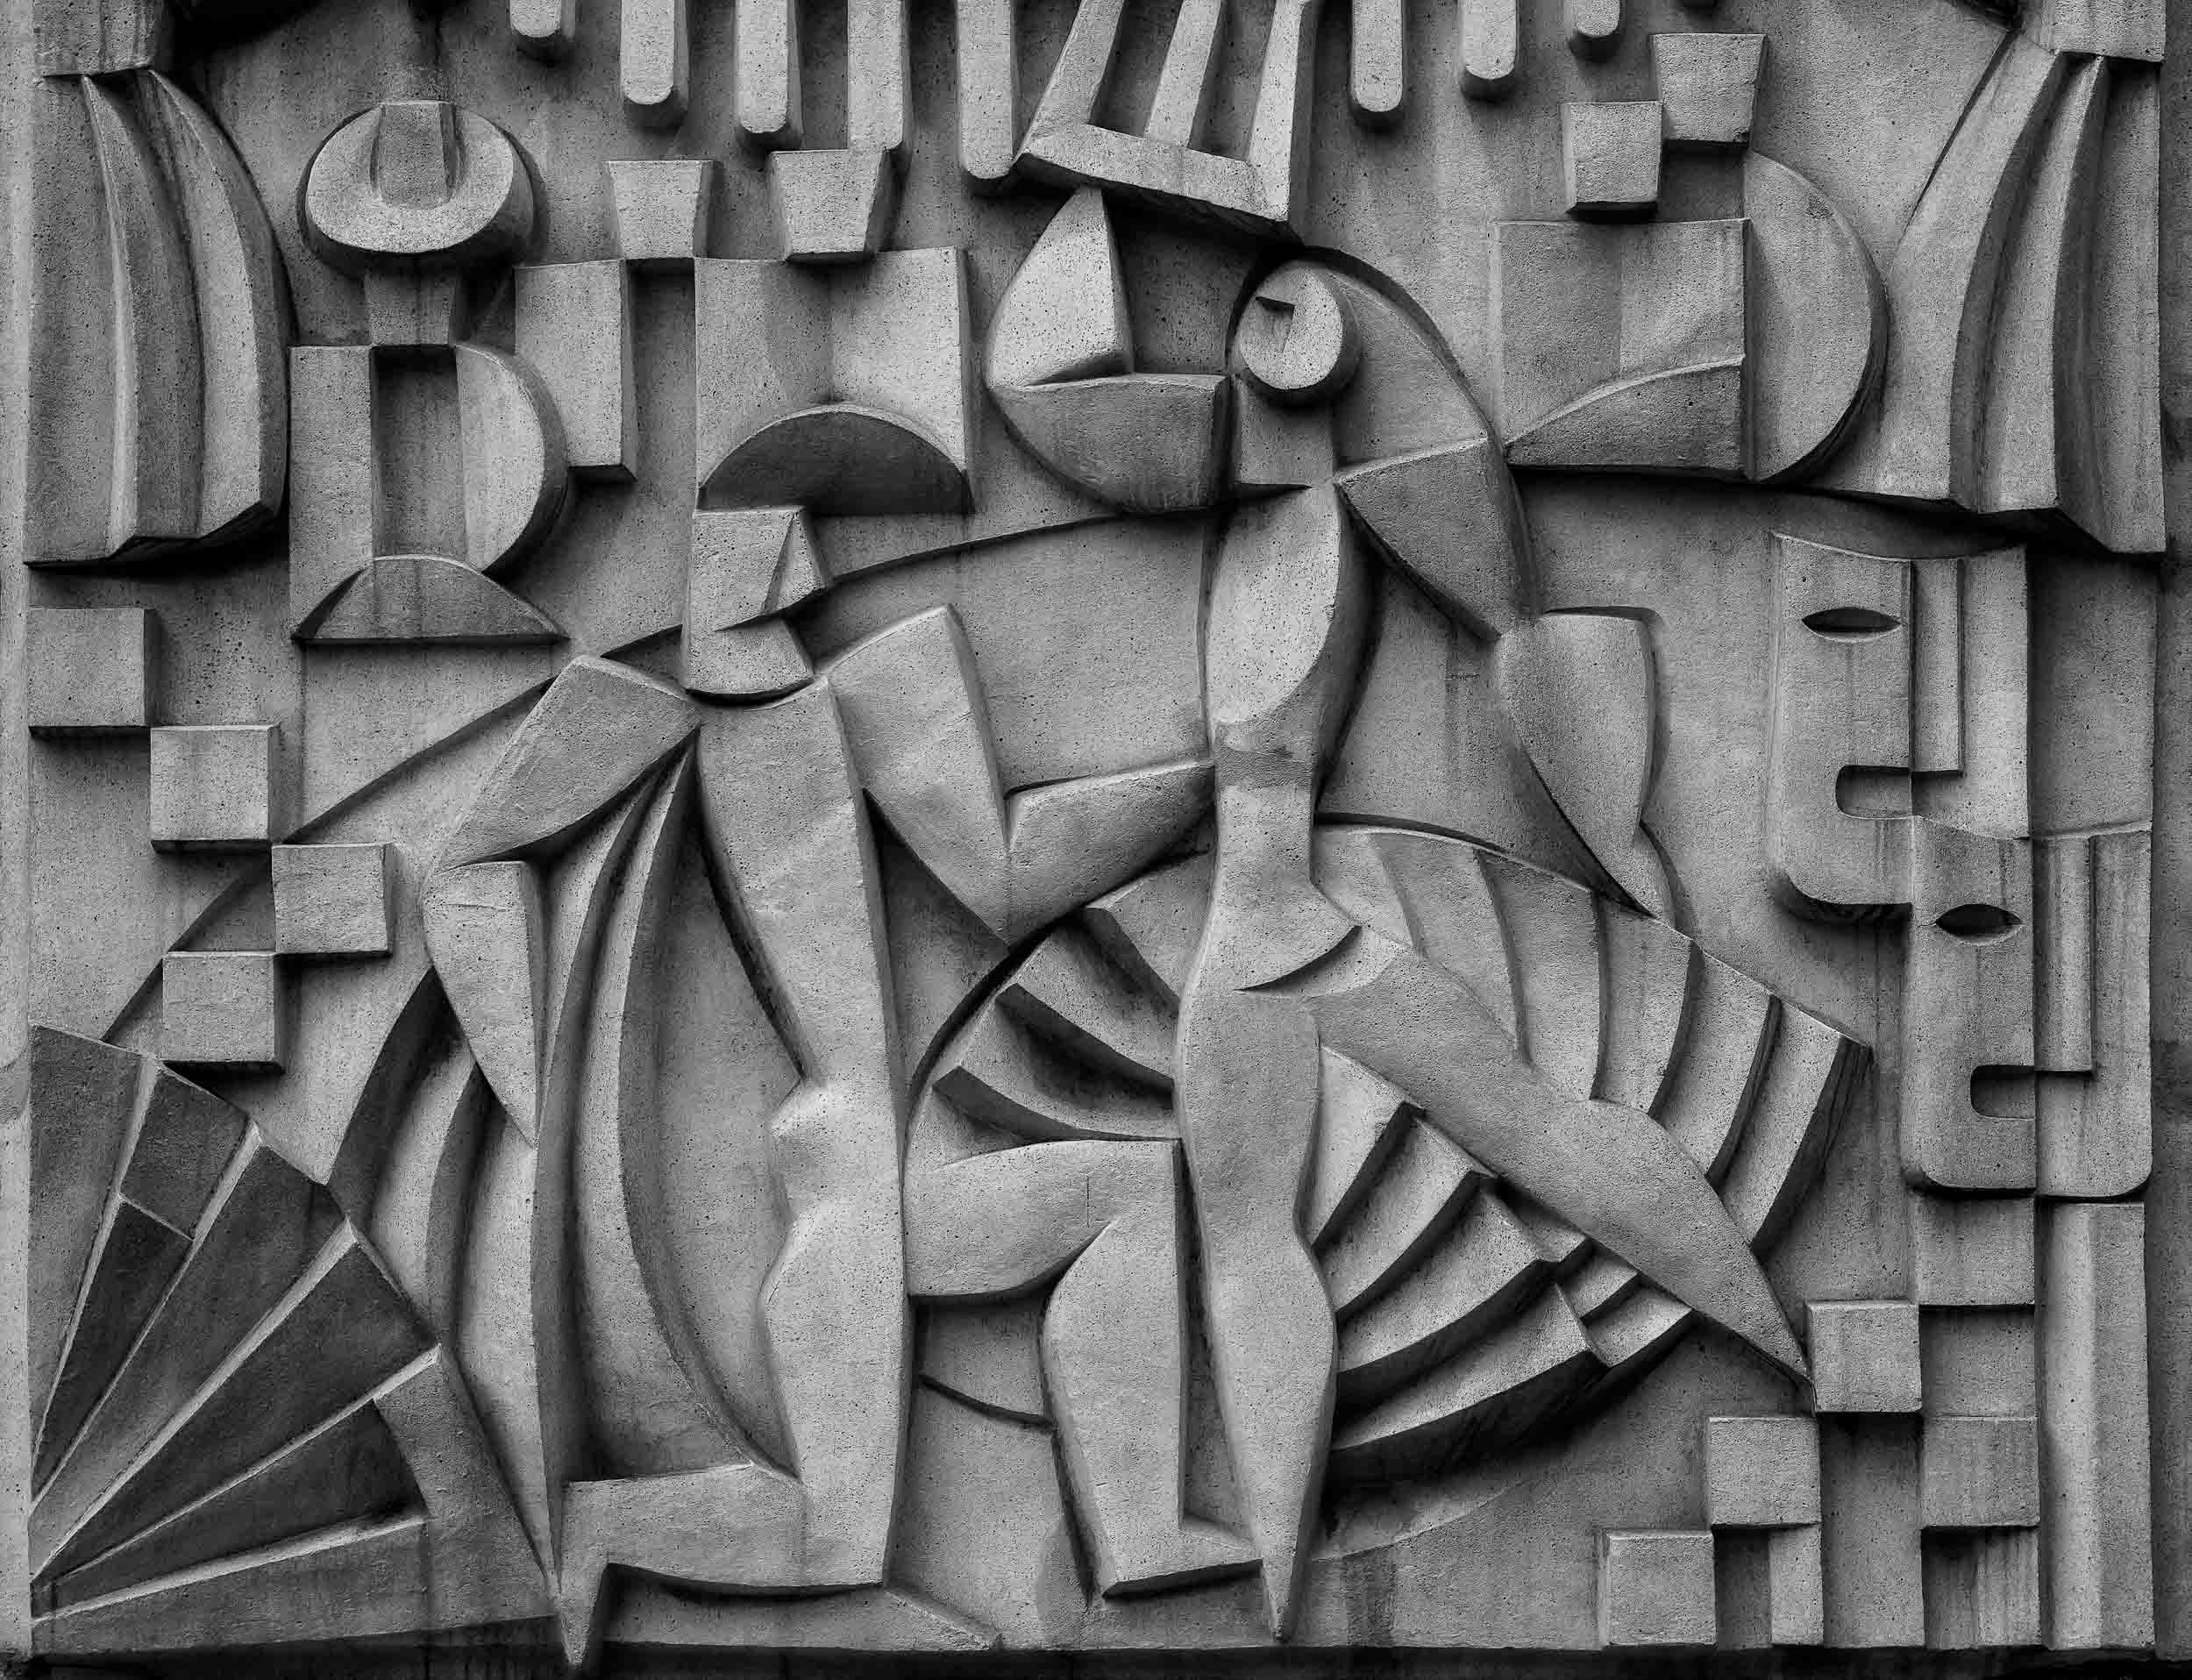 A lovely, figurative    detail in stone    in the Mitte precinct of    Berlin, Germany   .